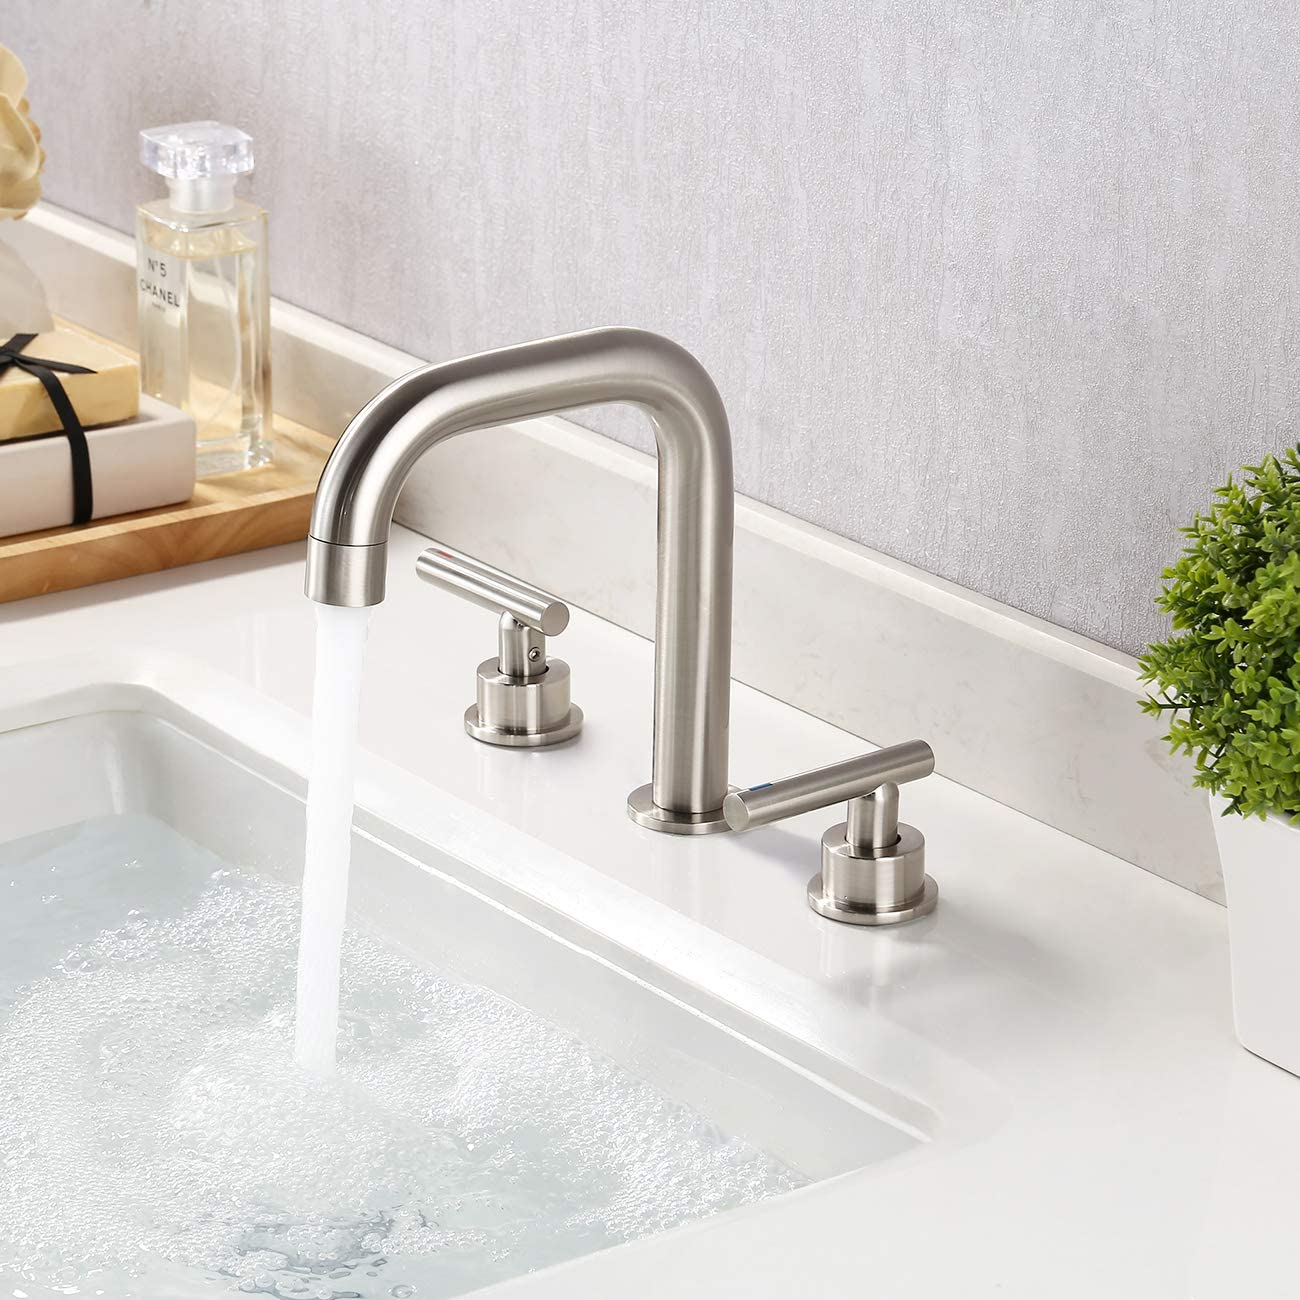 Kes Bathroom Faucet Brushed Nickel Sink Faucet Widespread 8 Inches 3 Hole Vanity Faucets Modern Lead Free Brass With Supply Hoses L4317lf Bn Amazon Ca Tools Home Improvement